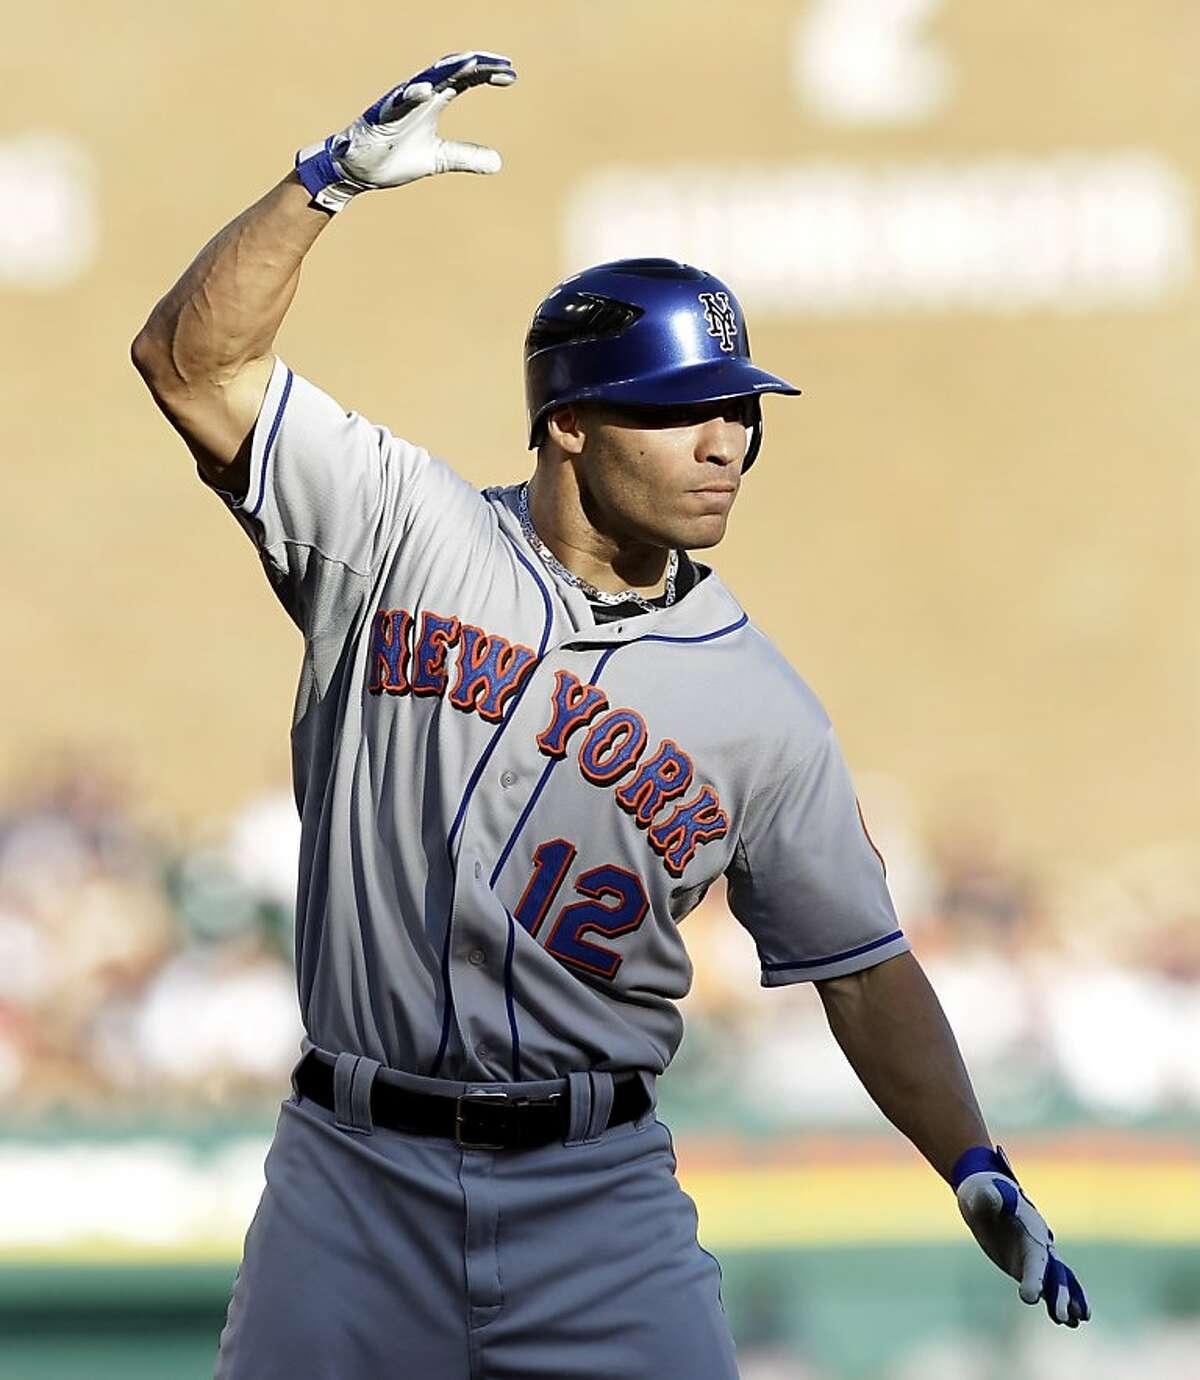 New York Mets left fielder Scott Hairston celebrates hitting a three-run triple during the first inning of a baseball game against the Detroit Tigers, Wednesday, June 29, 2011, in Detroit.